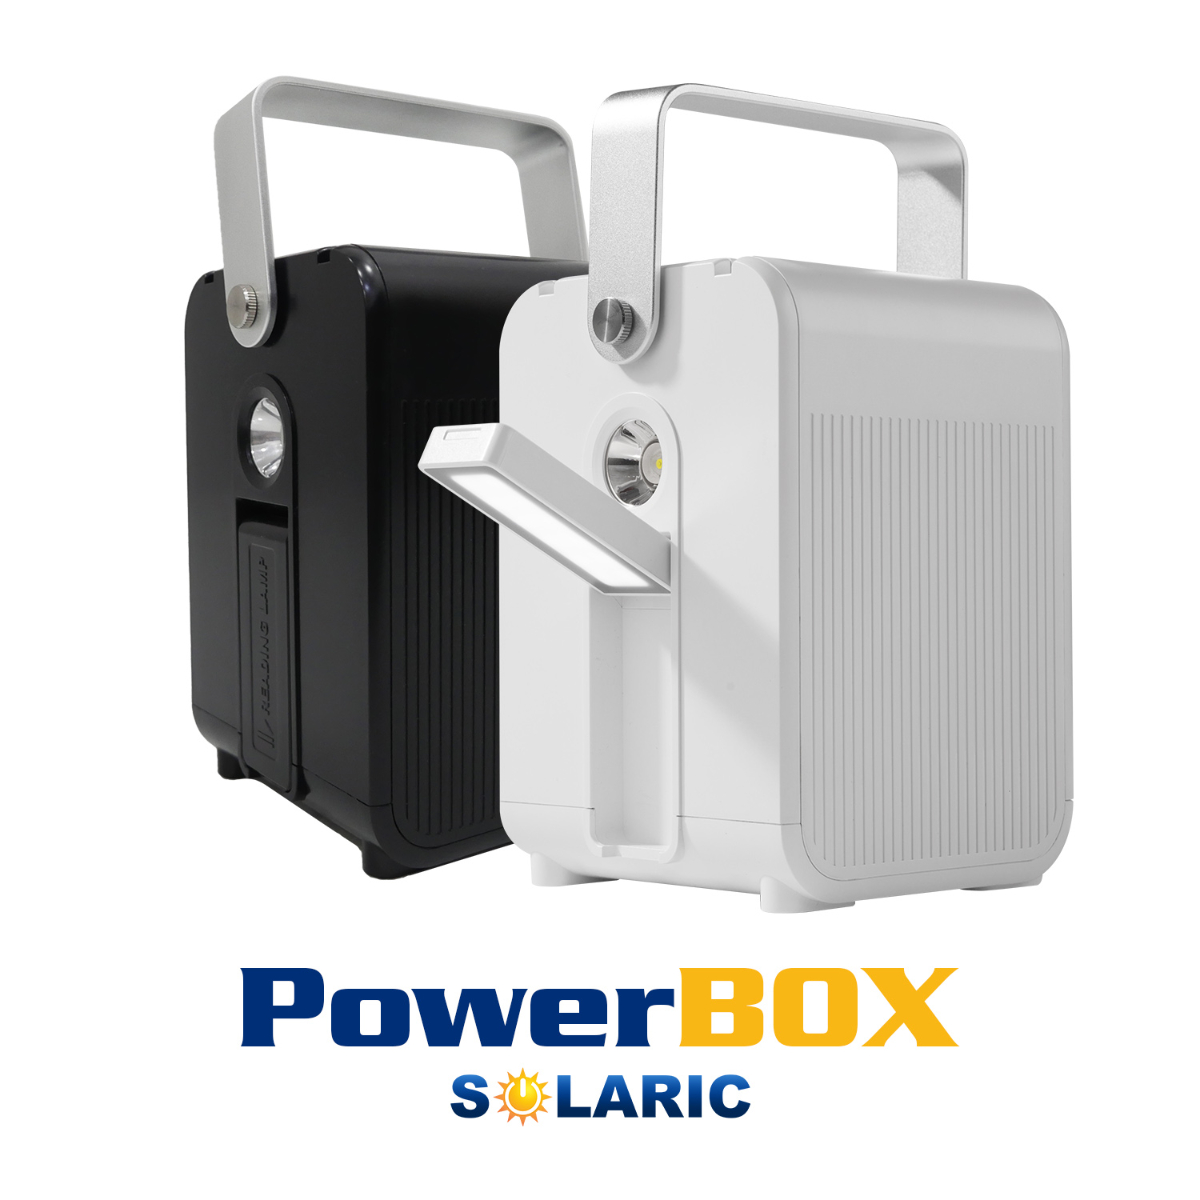 THE 2021 MUST-HAVE GADGET: THE SOLARIC POWERBOX!